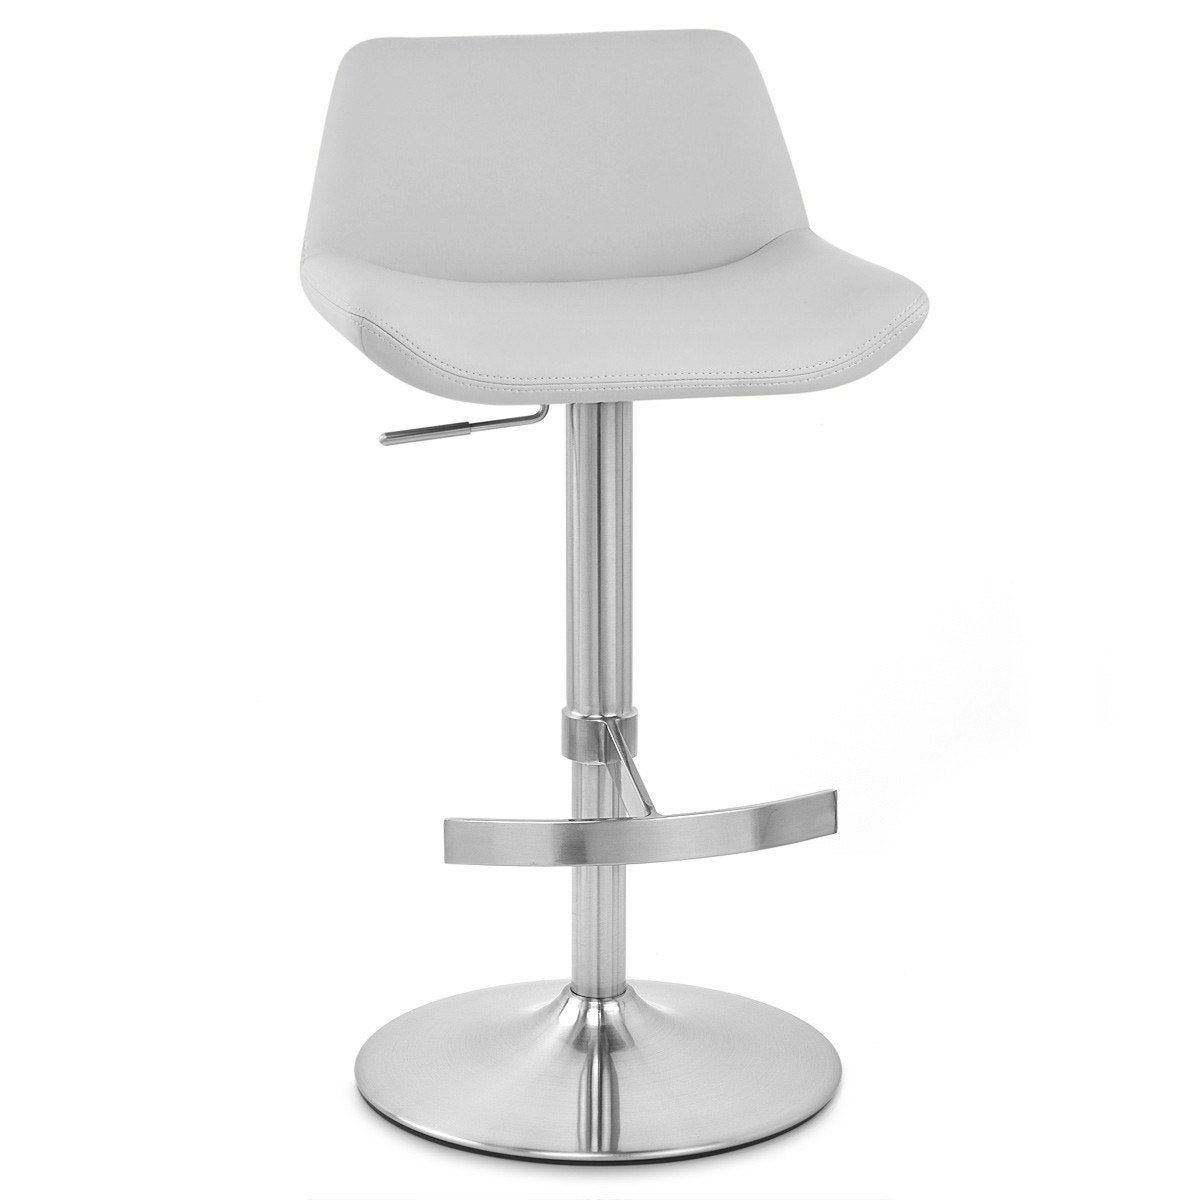 Tabouret De Bar Chic Simili Cuir Gris Christina Bar Chic Simili Cuir Et Tabouret